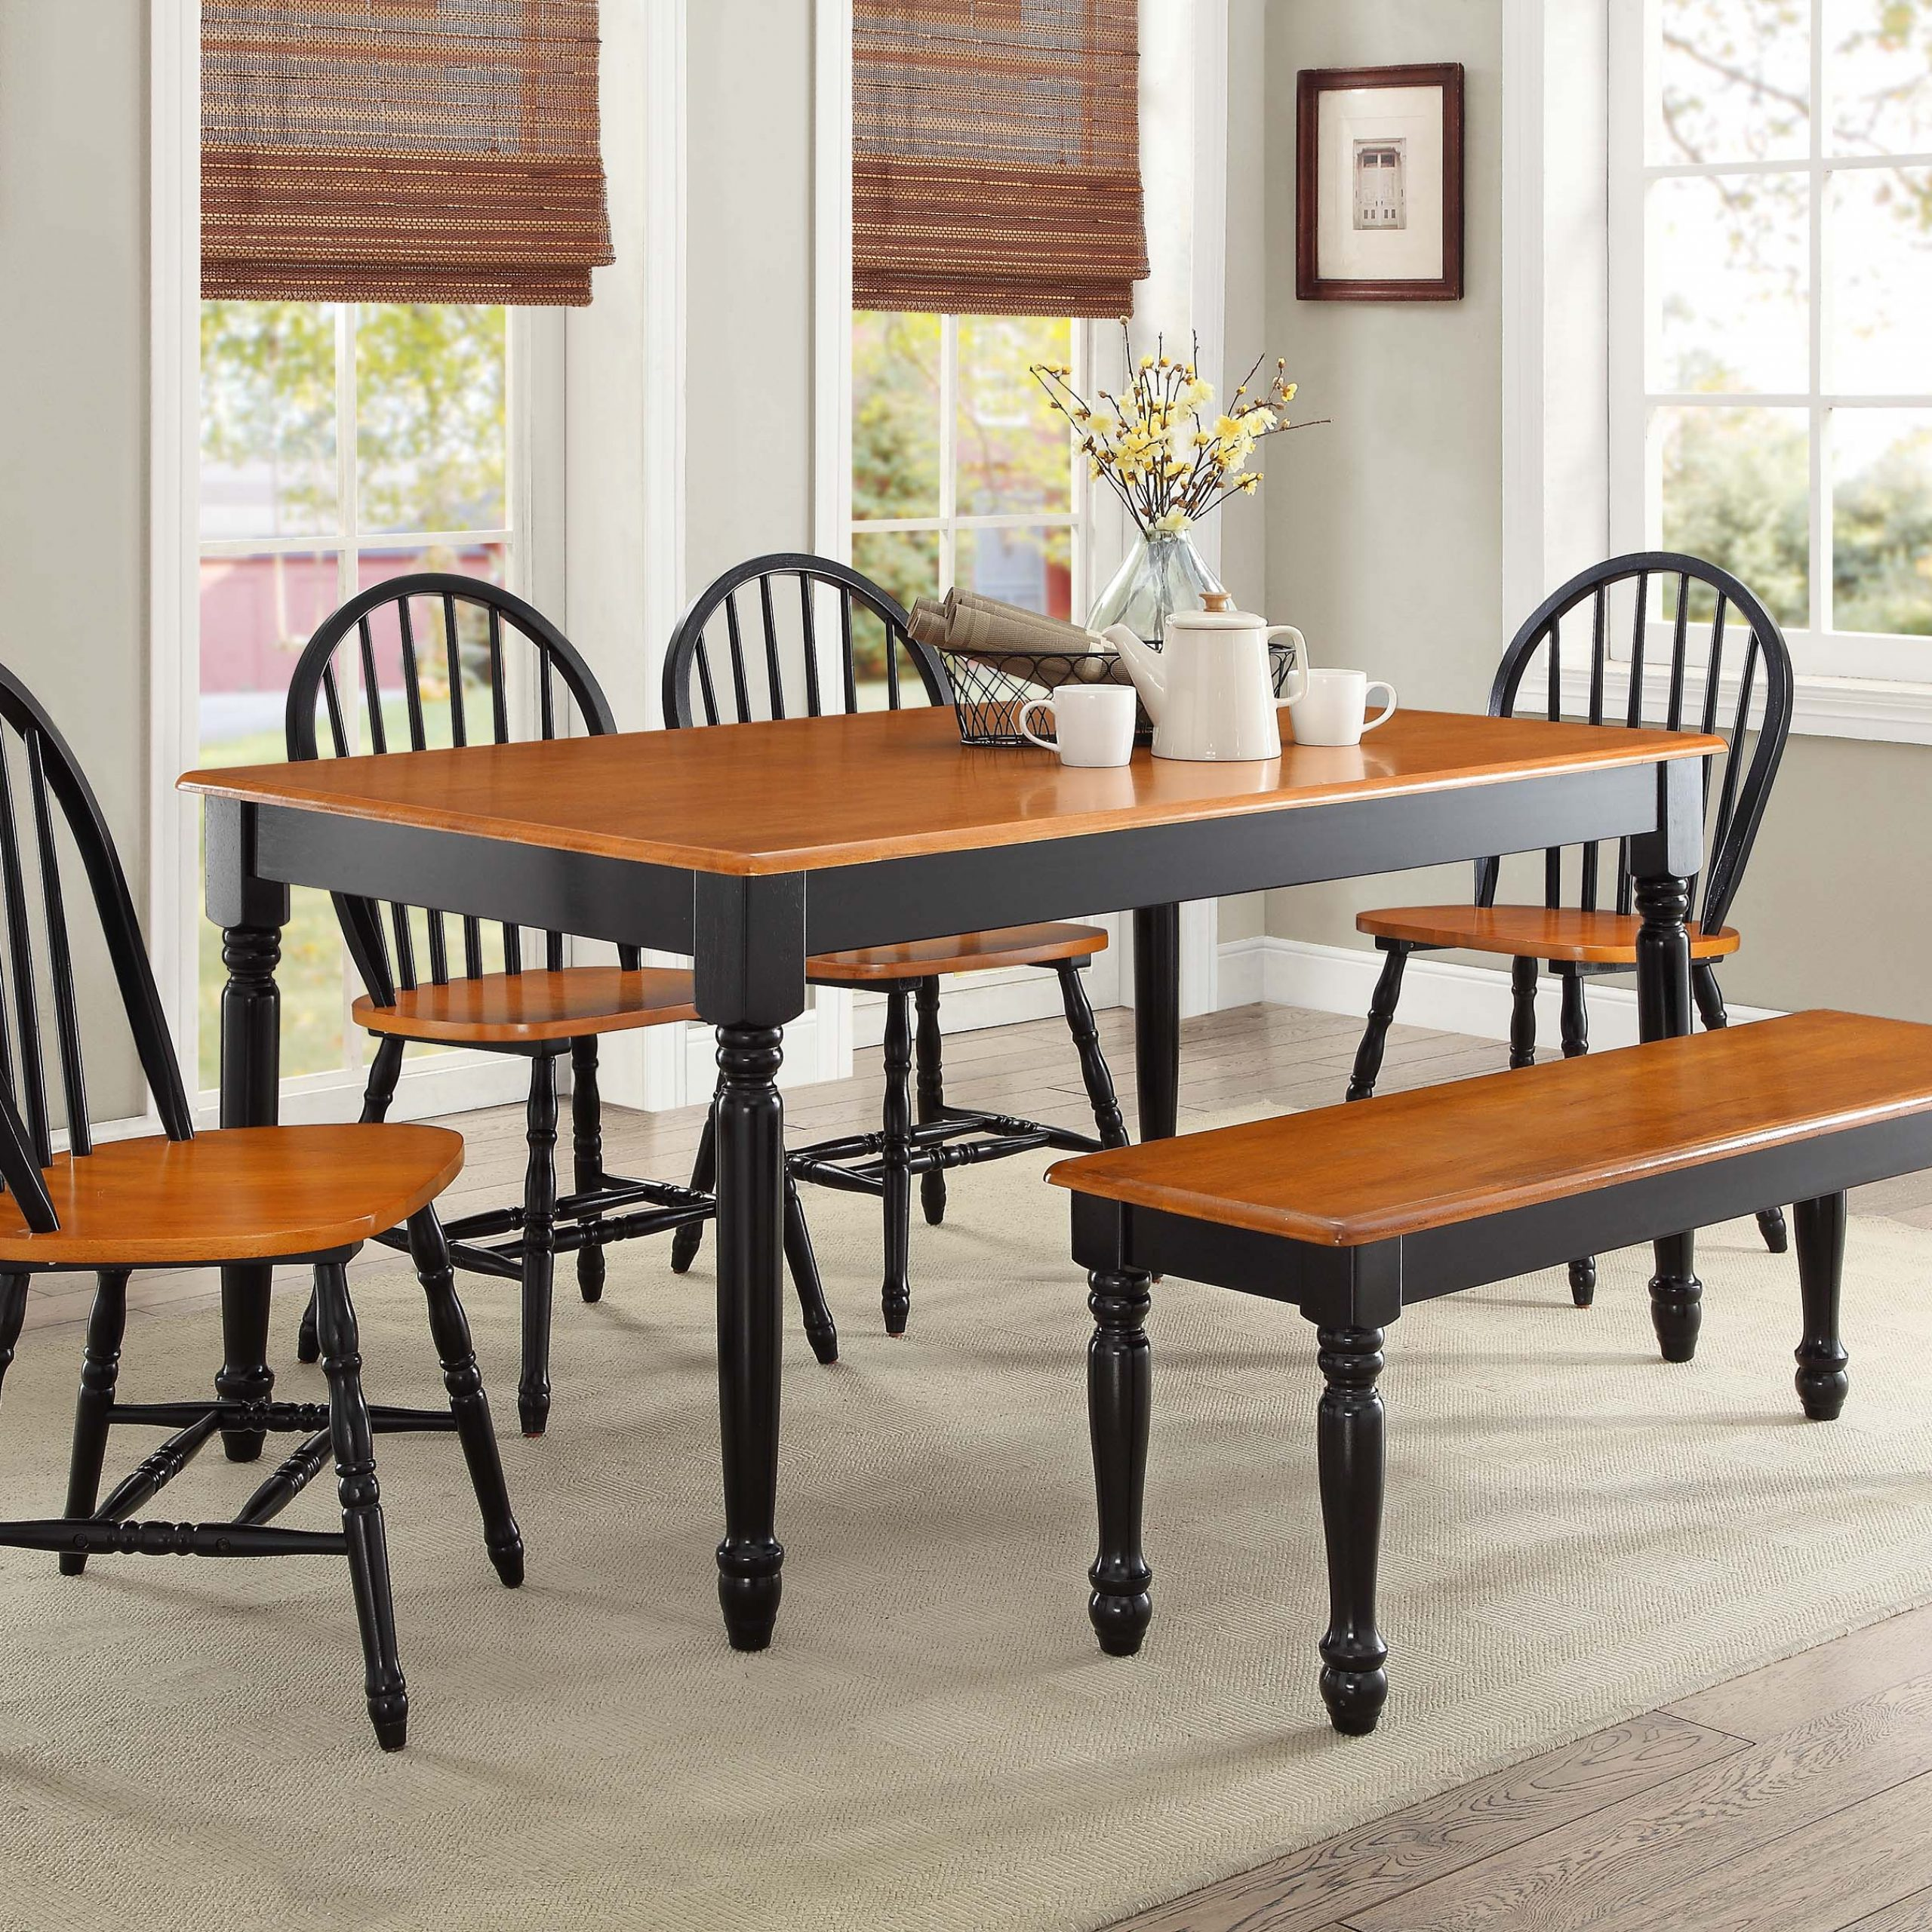 Trendy Antique Black Wood Kitchen Dining Tables With Regard To Kitchen And Dining Room Chairs Wood : Kitchen And Dining (View 18 of 30)